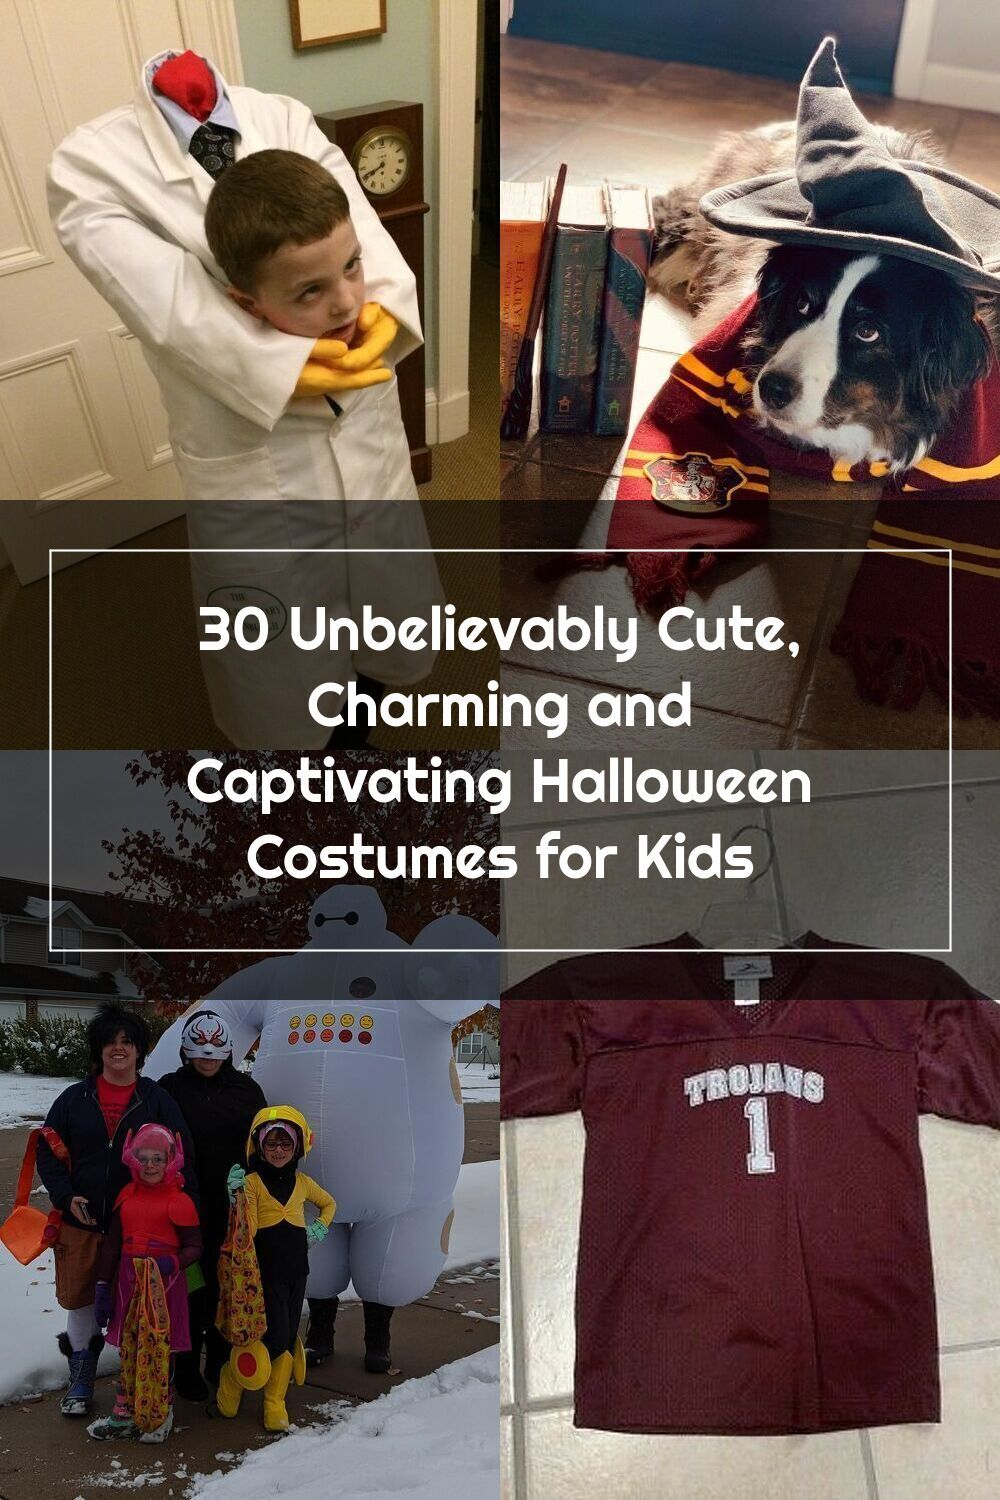 Halloween 2020 Severed Head Severed Head #Halloween #costume in 2020   Halloween costumes for